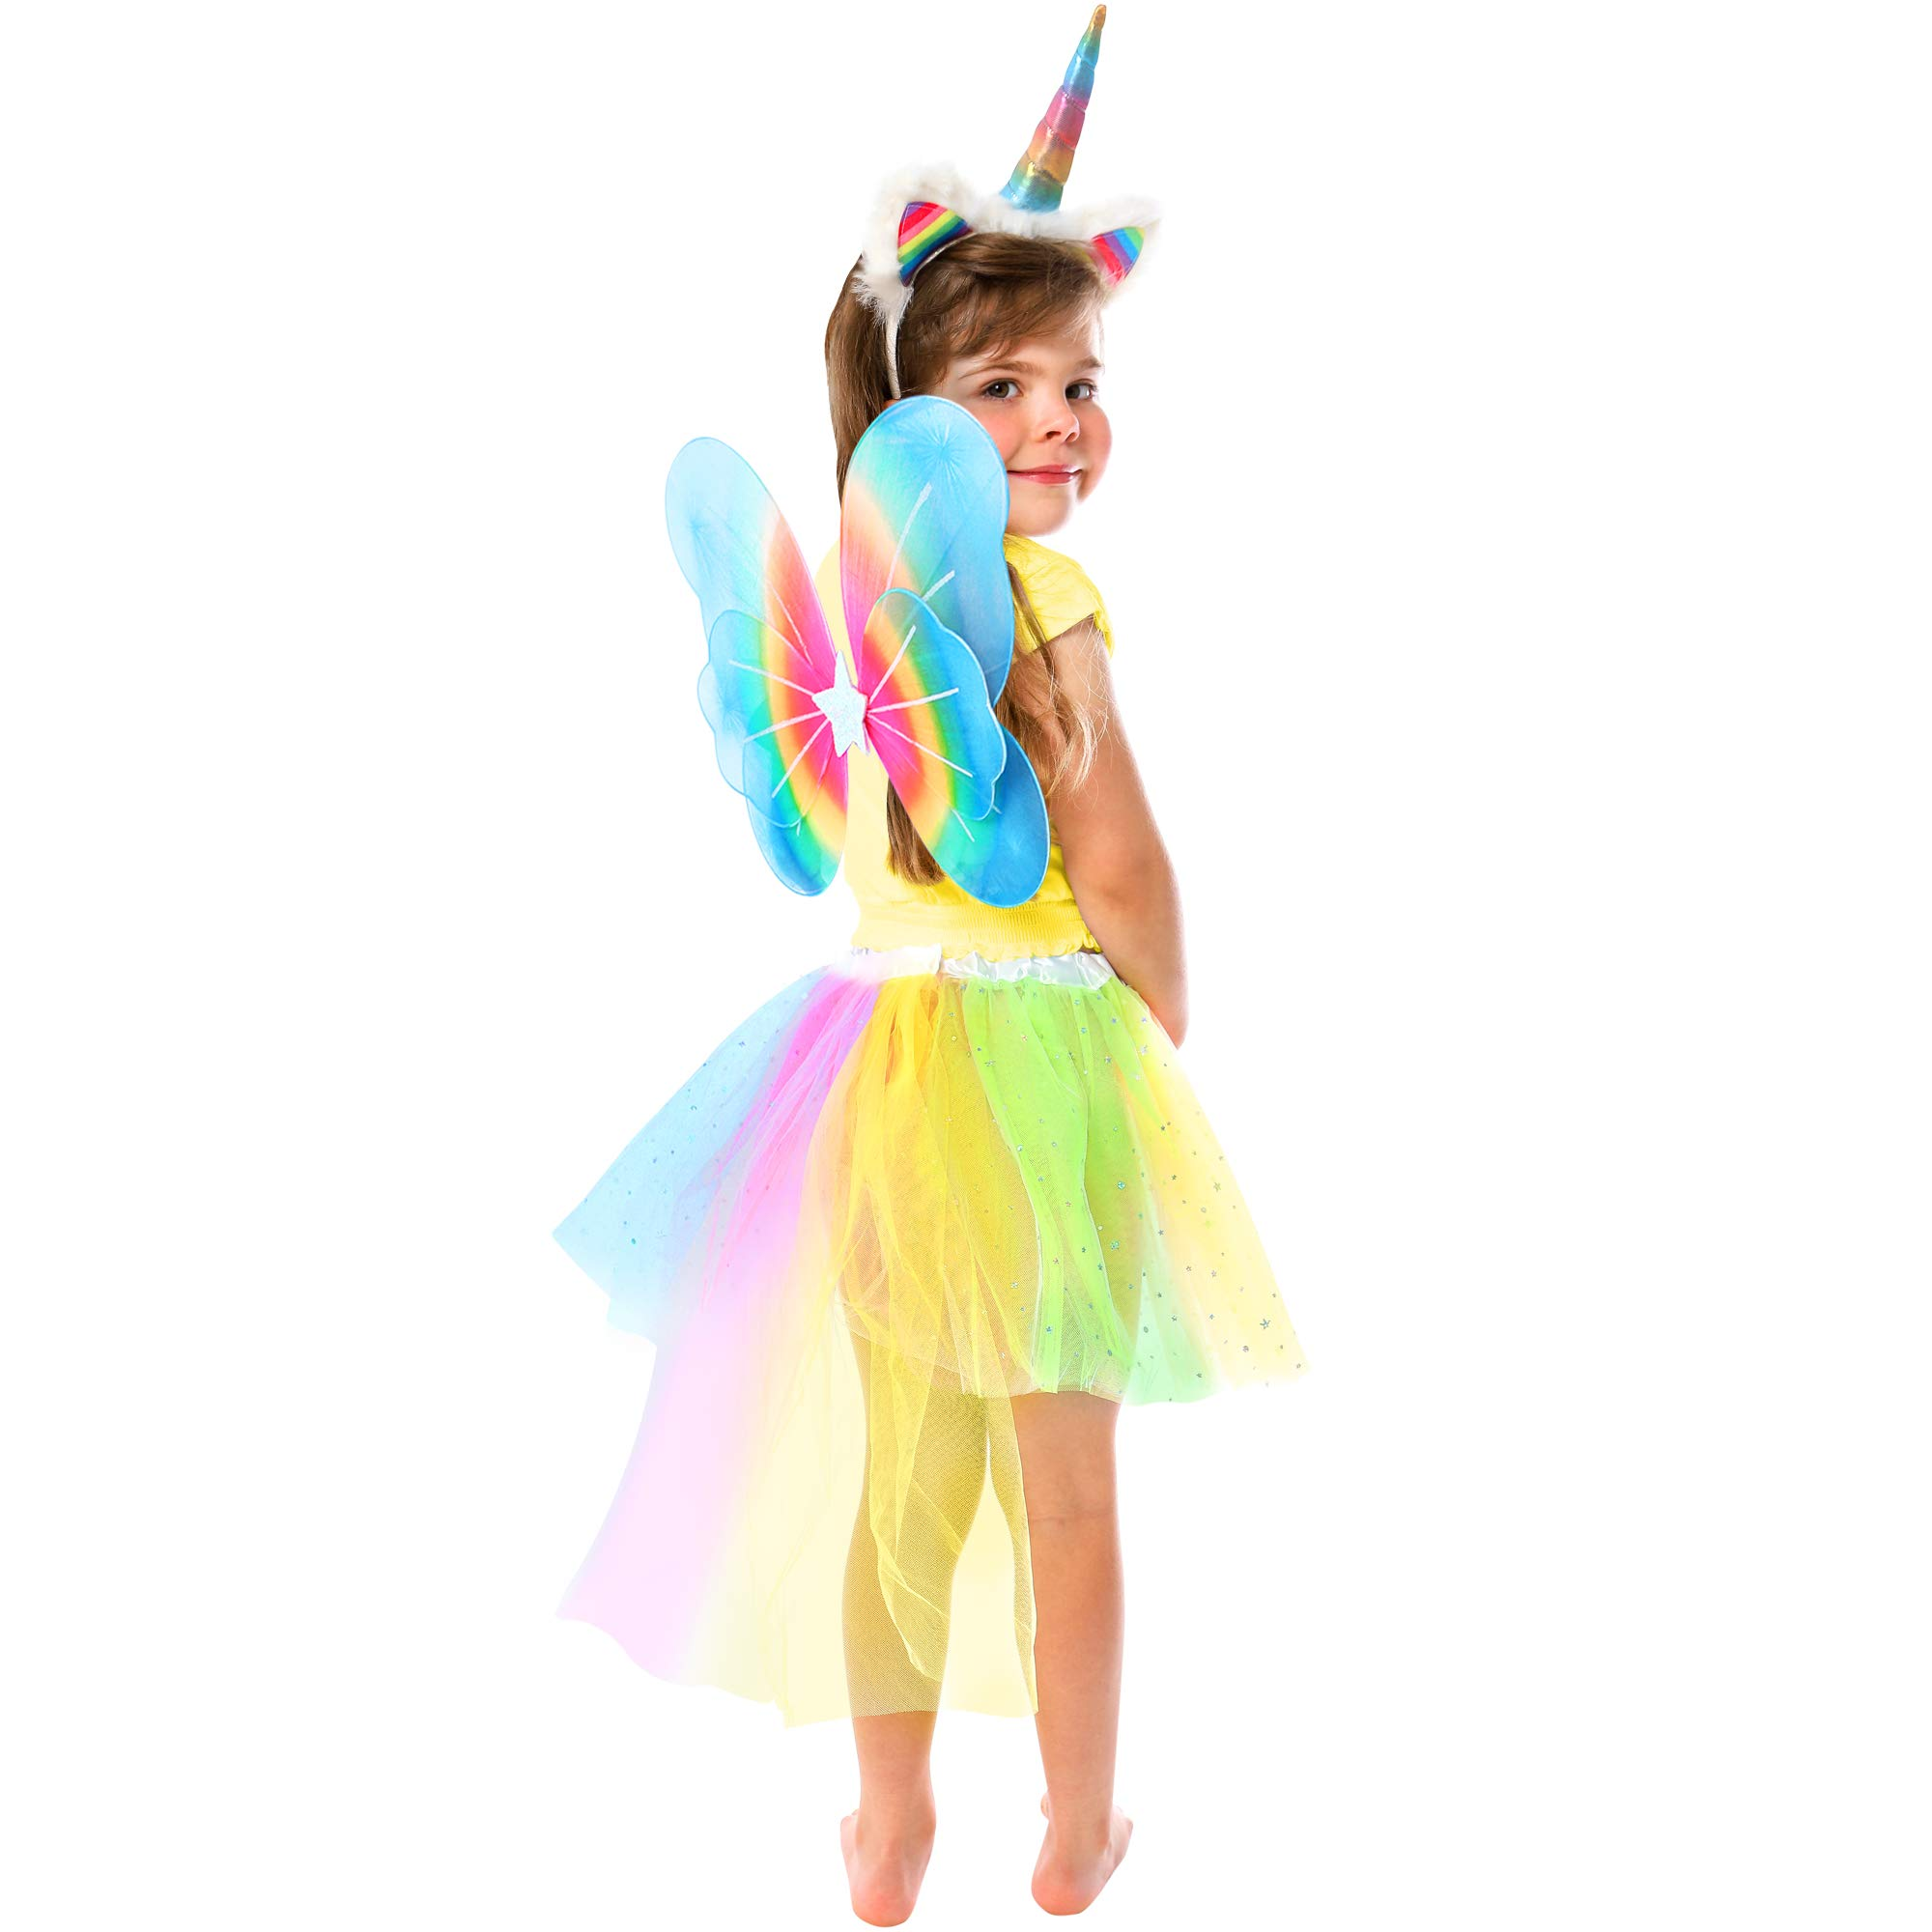 GirlZone: Unicorn Outfit for Girls Dress Up, Includes Unicorn Headband, Rainbow Tutu with Tail & Fairy Wings, Great Gift for Girls